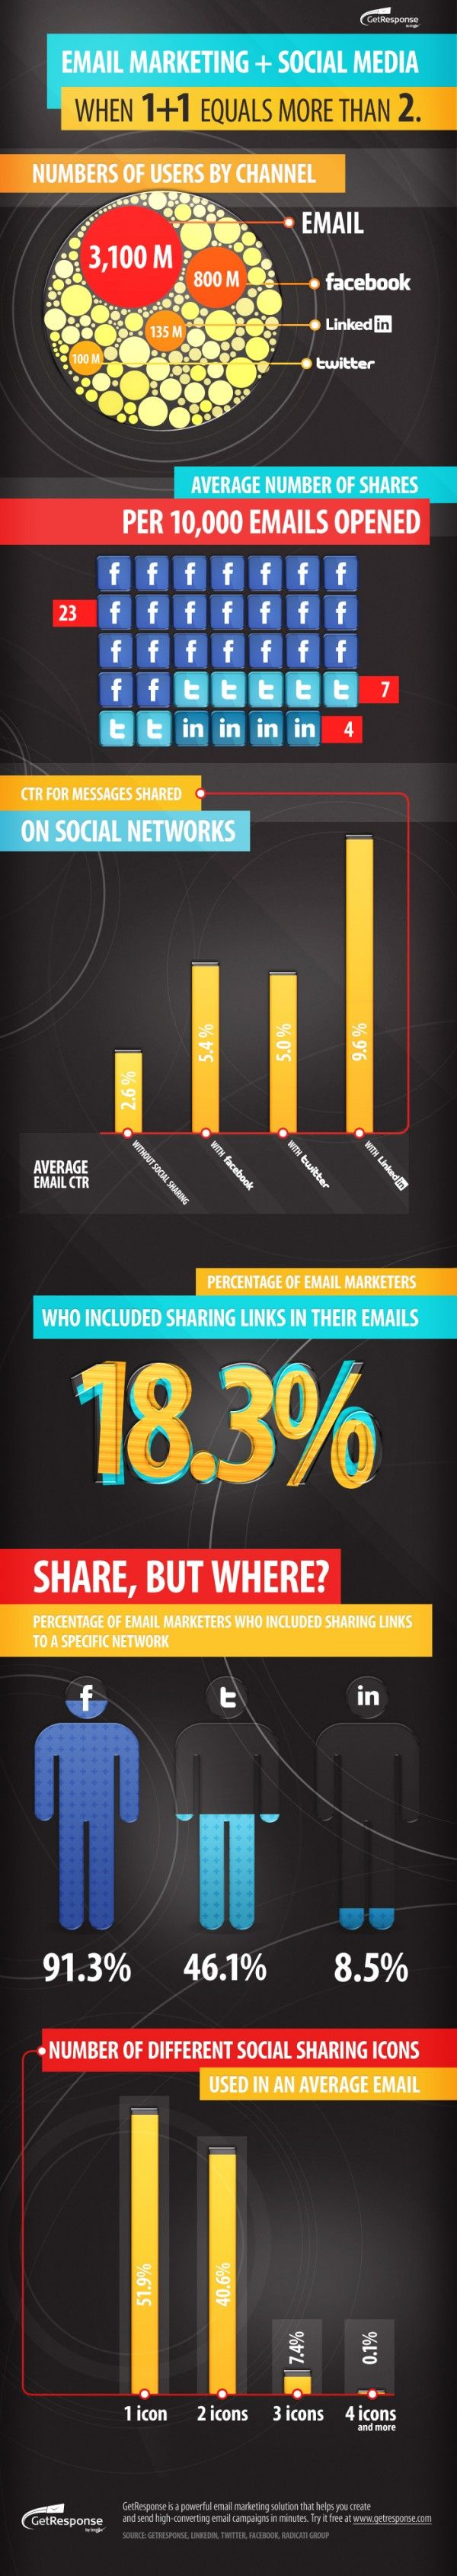 Social Sharing Boosts Email CTR Up To 115% [INFOGRAPHIC]